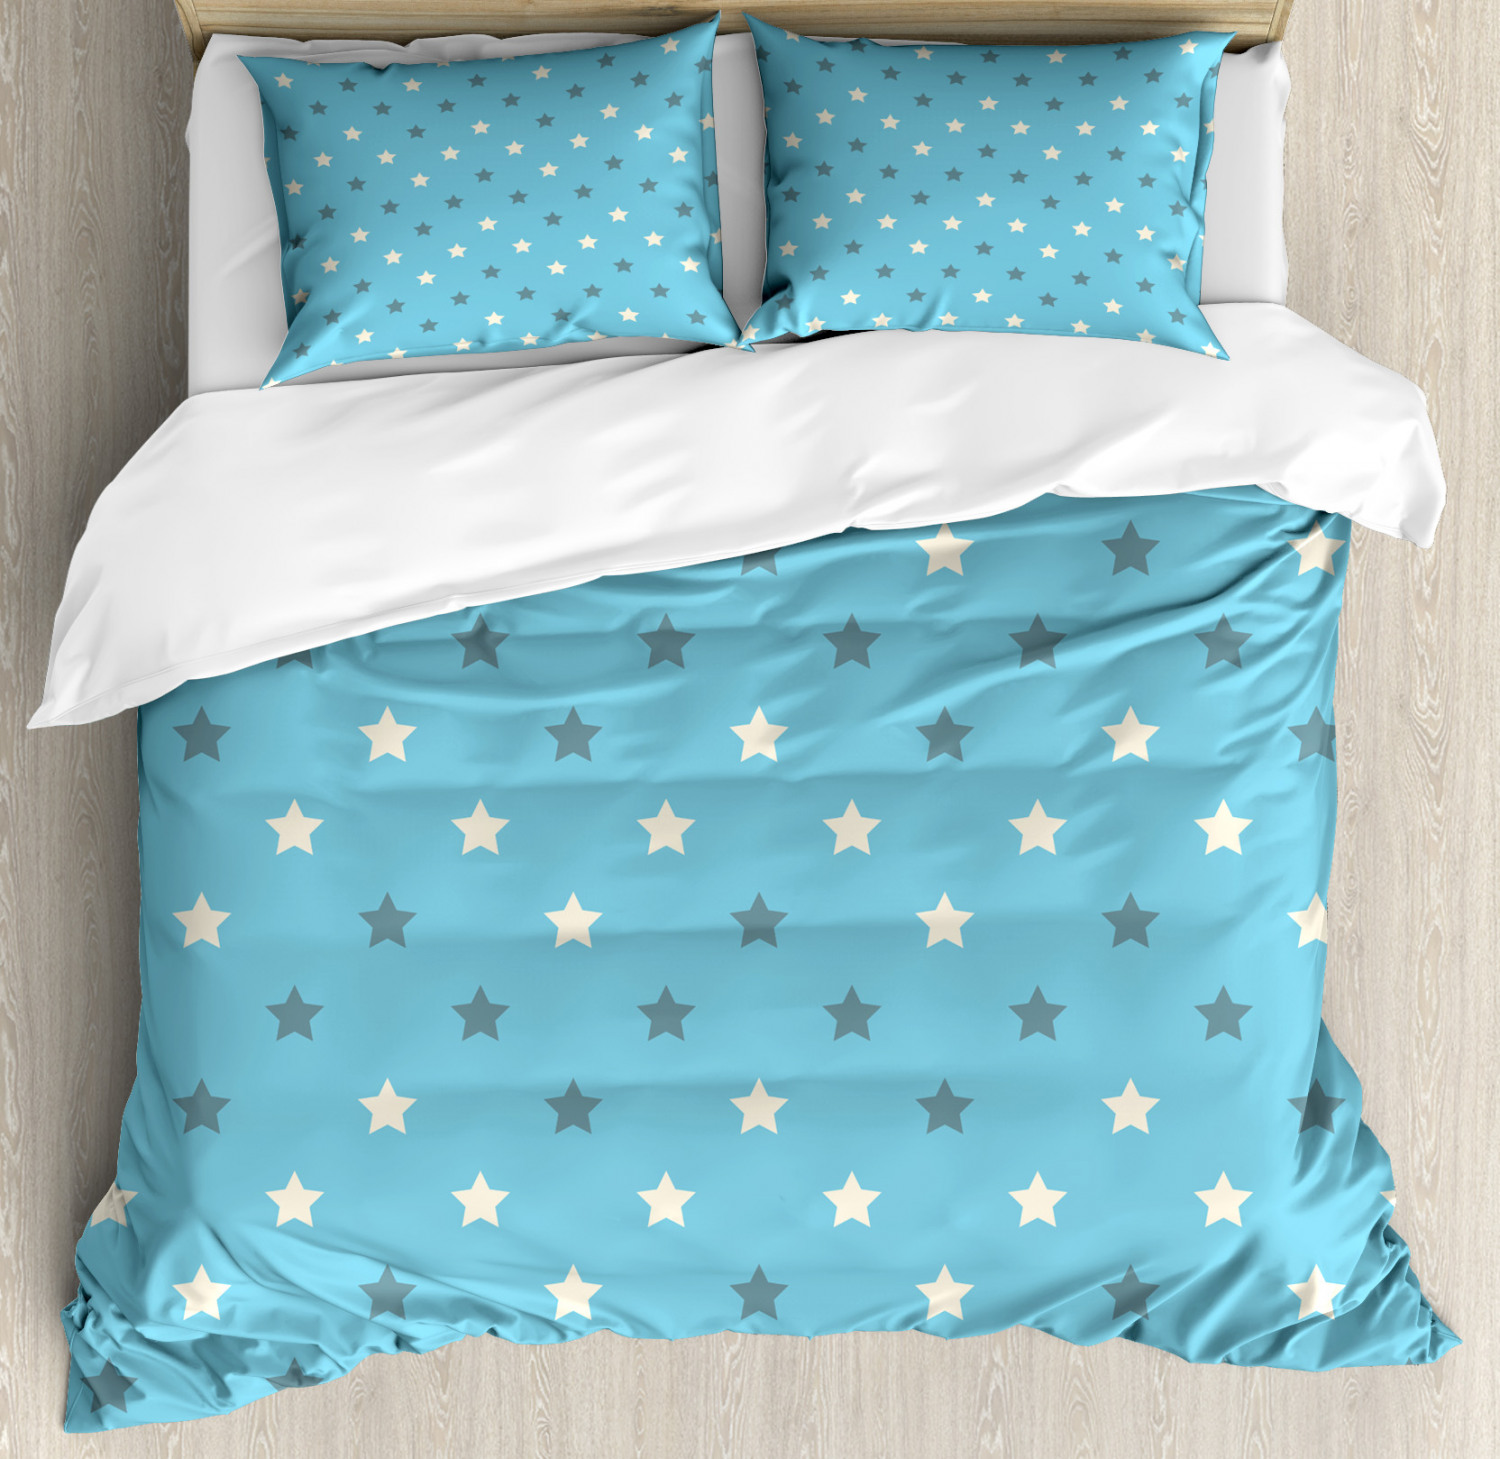 Geometric Duvet Cover Set with Pillow Shams Zigzag Star Pattern Print